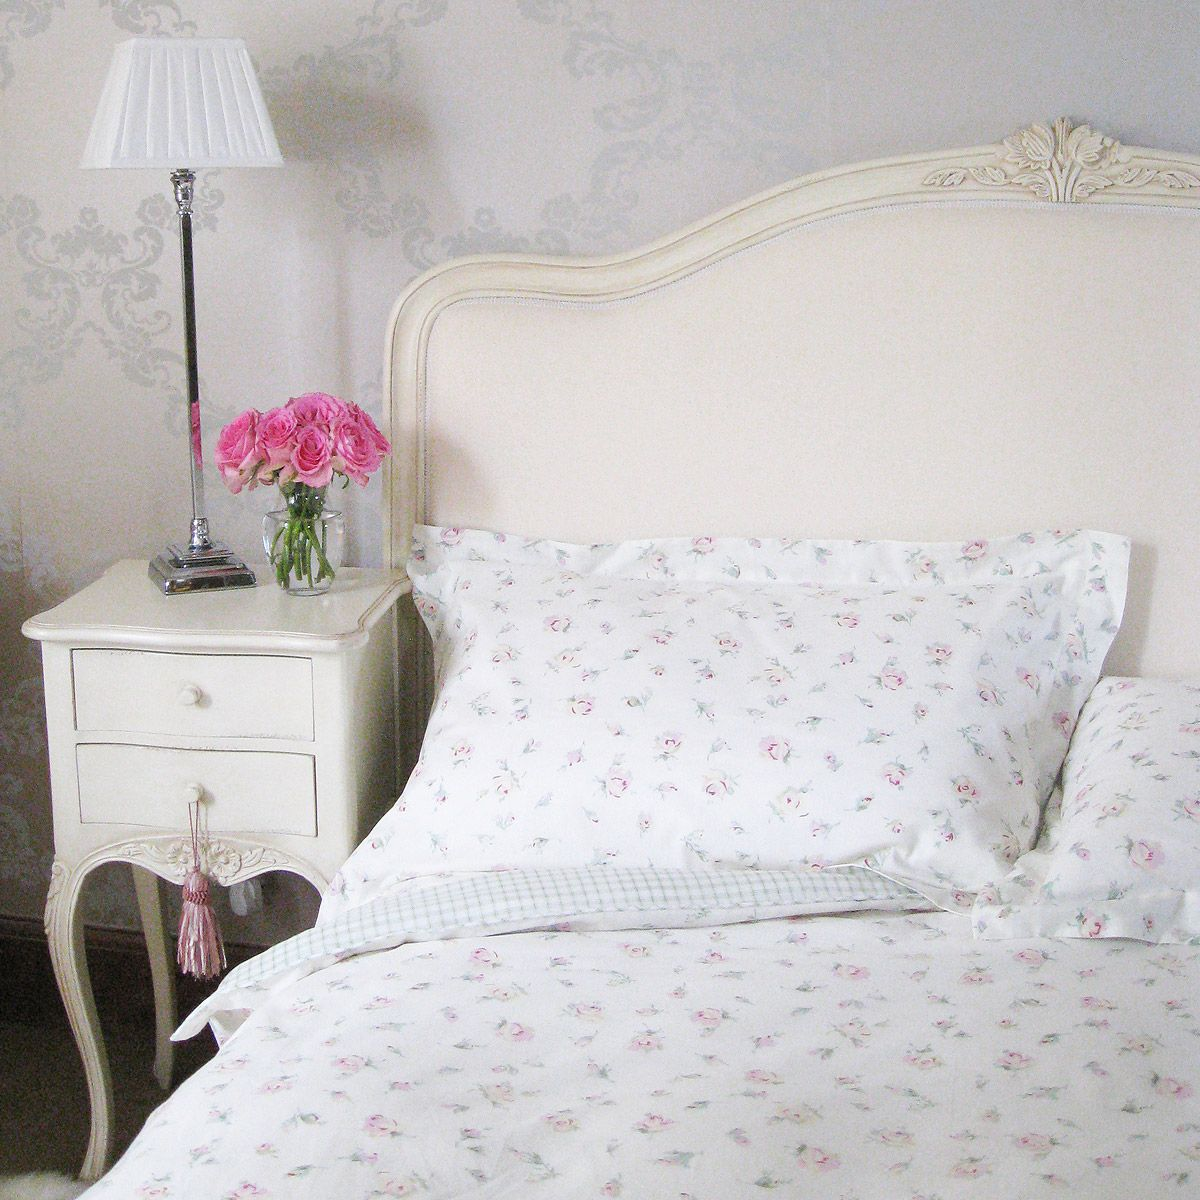 Parisian Upholstered Shabby Chic Bed in Antique Cream